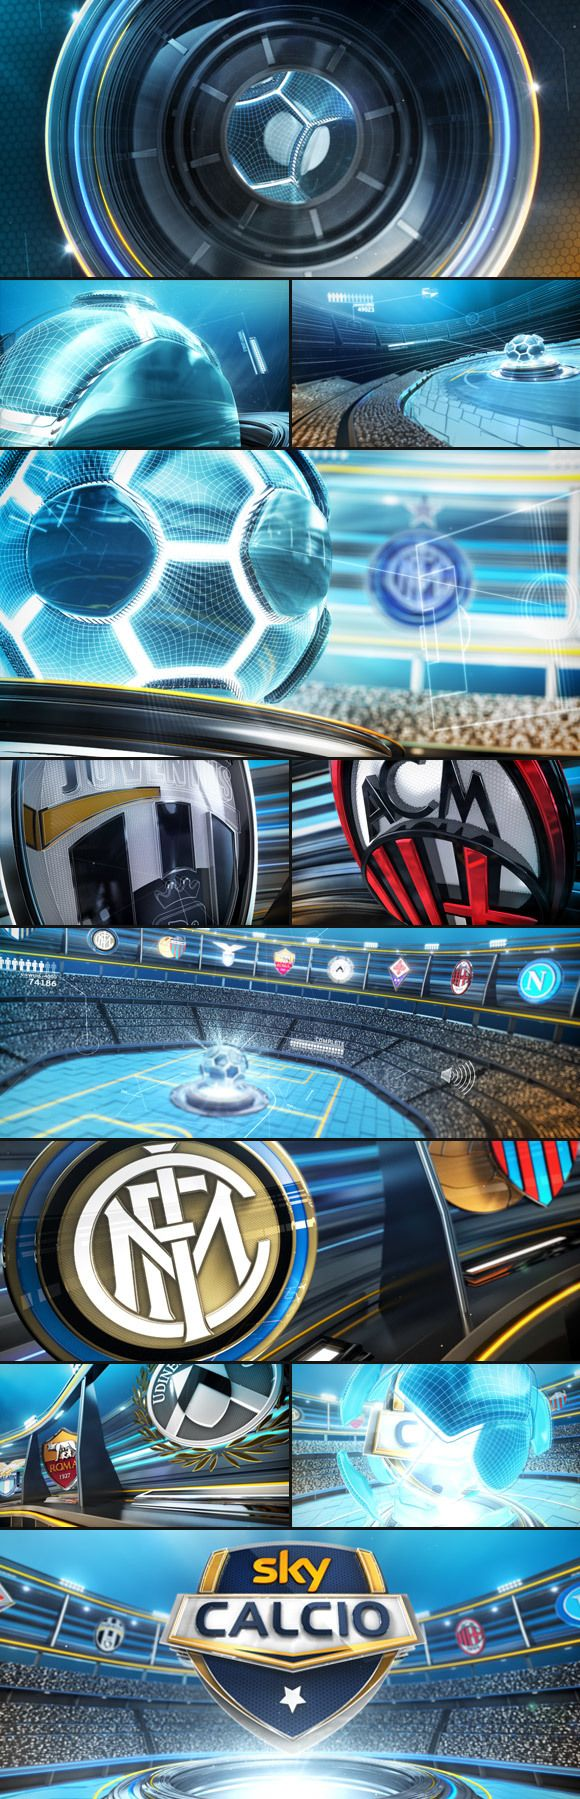 Sky Calcio 2013-14 by Carmine Renzulli, via Behance